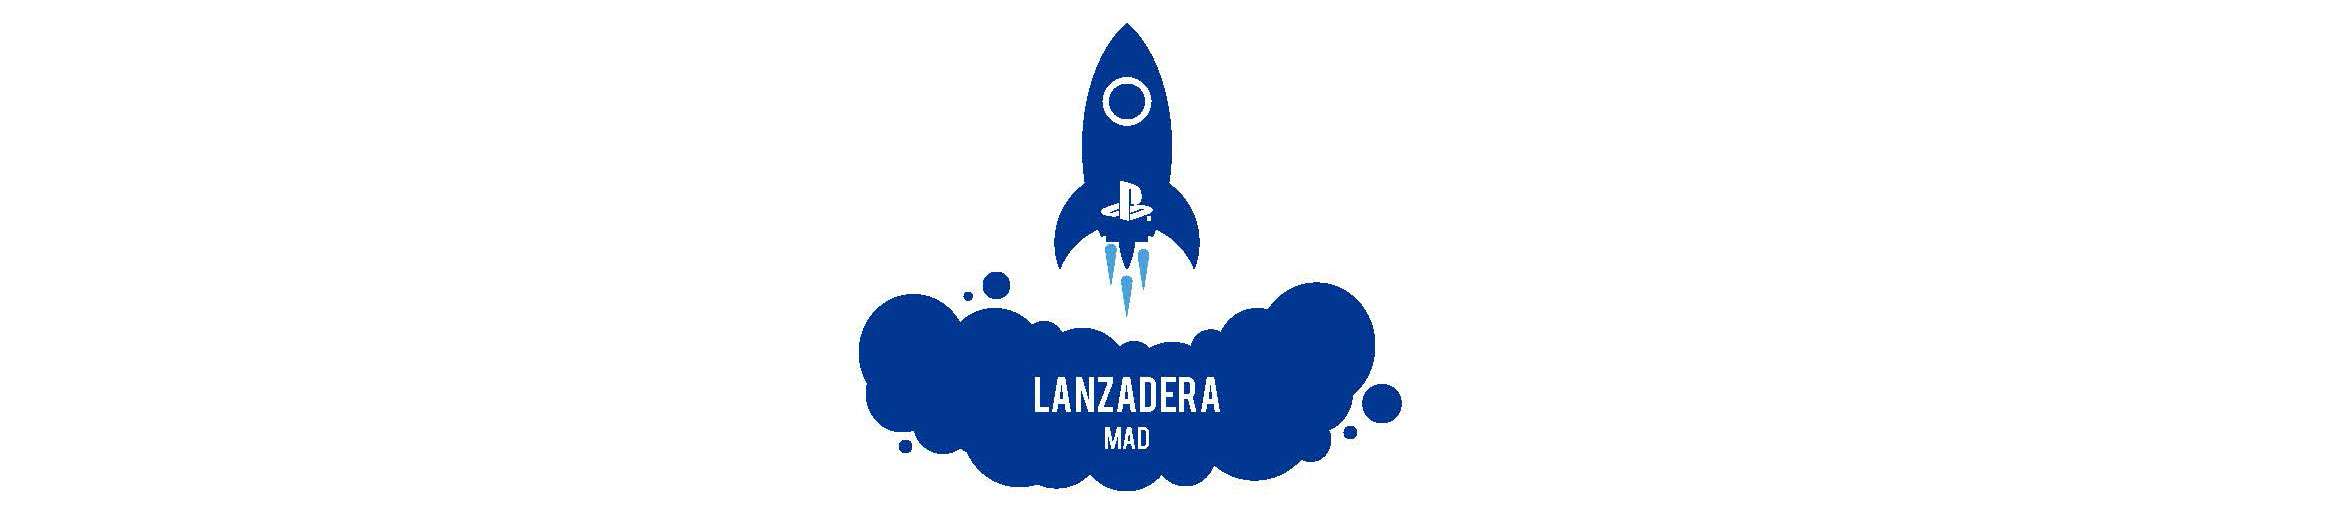 Lanzadera PlayStation